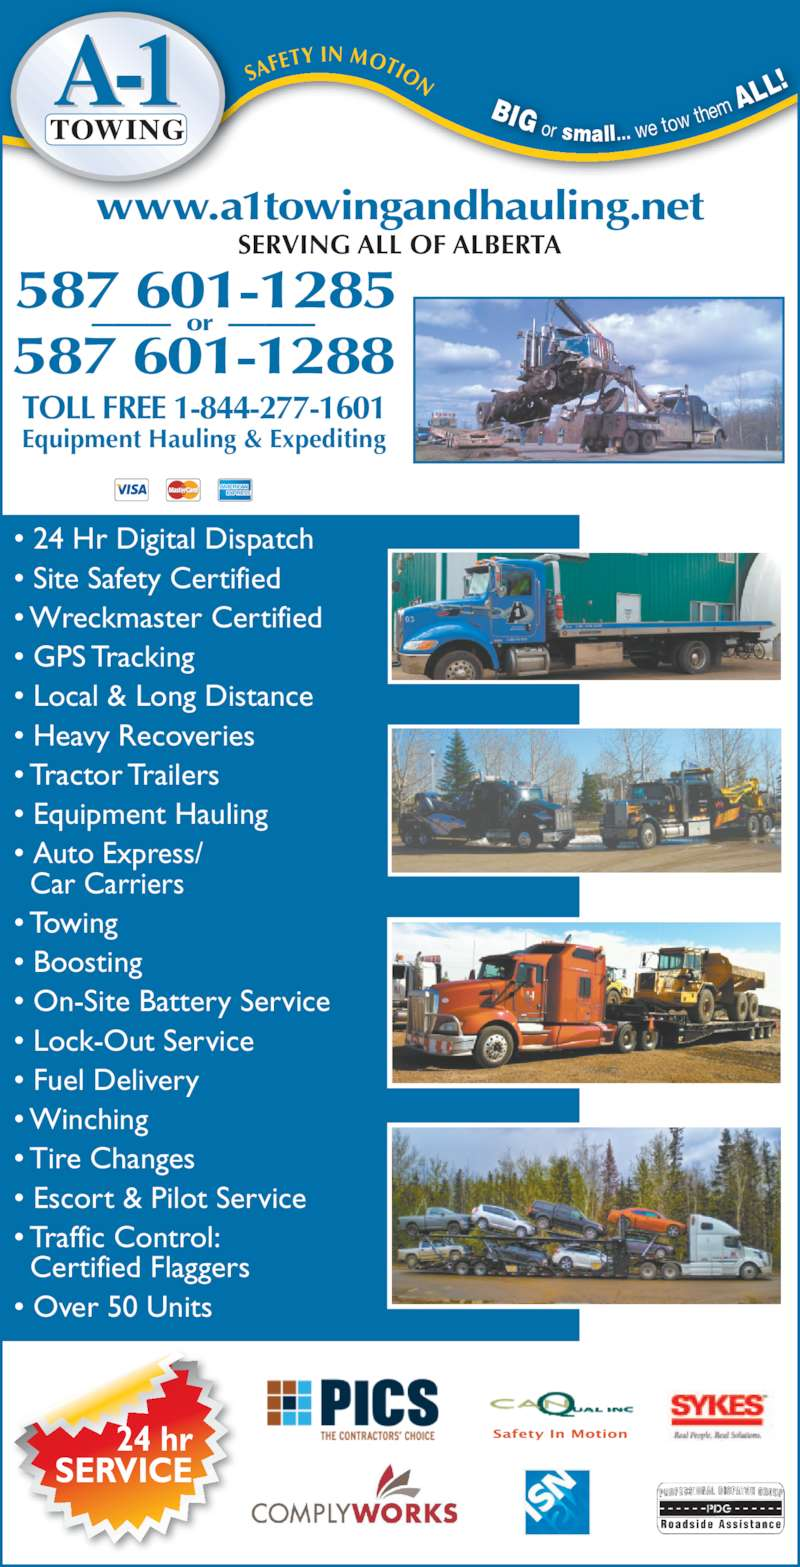 A-1 Towing (780-743-1253) - Display Ad - 24 hr SERVICE ? 24 Hr Digital Dispatch ? Site Safety Certified ? Wreckmaster Certified ? GPS Tracking ? Local & Long Distance ? Heavy Recoveries ? Tractor Trailers ? Equipment Hauling ? Auto Express/   Car Carriers ? Towing ? Boosting ? On-Site Battery Service ? Lock-Out Service ? Fuel Delivery  ? Winching ? Tire Changes ? Escort & Pilot Service ? Traffic Control:   Certified Flaggers ? Over 50 Units 587 601-1285 -----------   or   ------------ 587 601-1288 TOLL FREE 1-844-277-1601 www.a1towingandhauling.net SERVING ALL OF ALBERTA Equipment Hauling & Expediting BIG  or  small... we tow  them  ALL !SA FETY IN MOTION